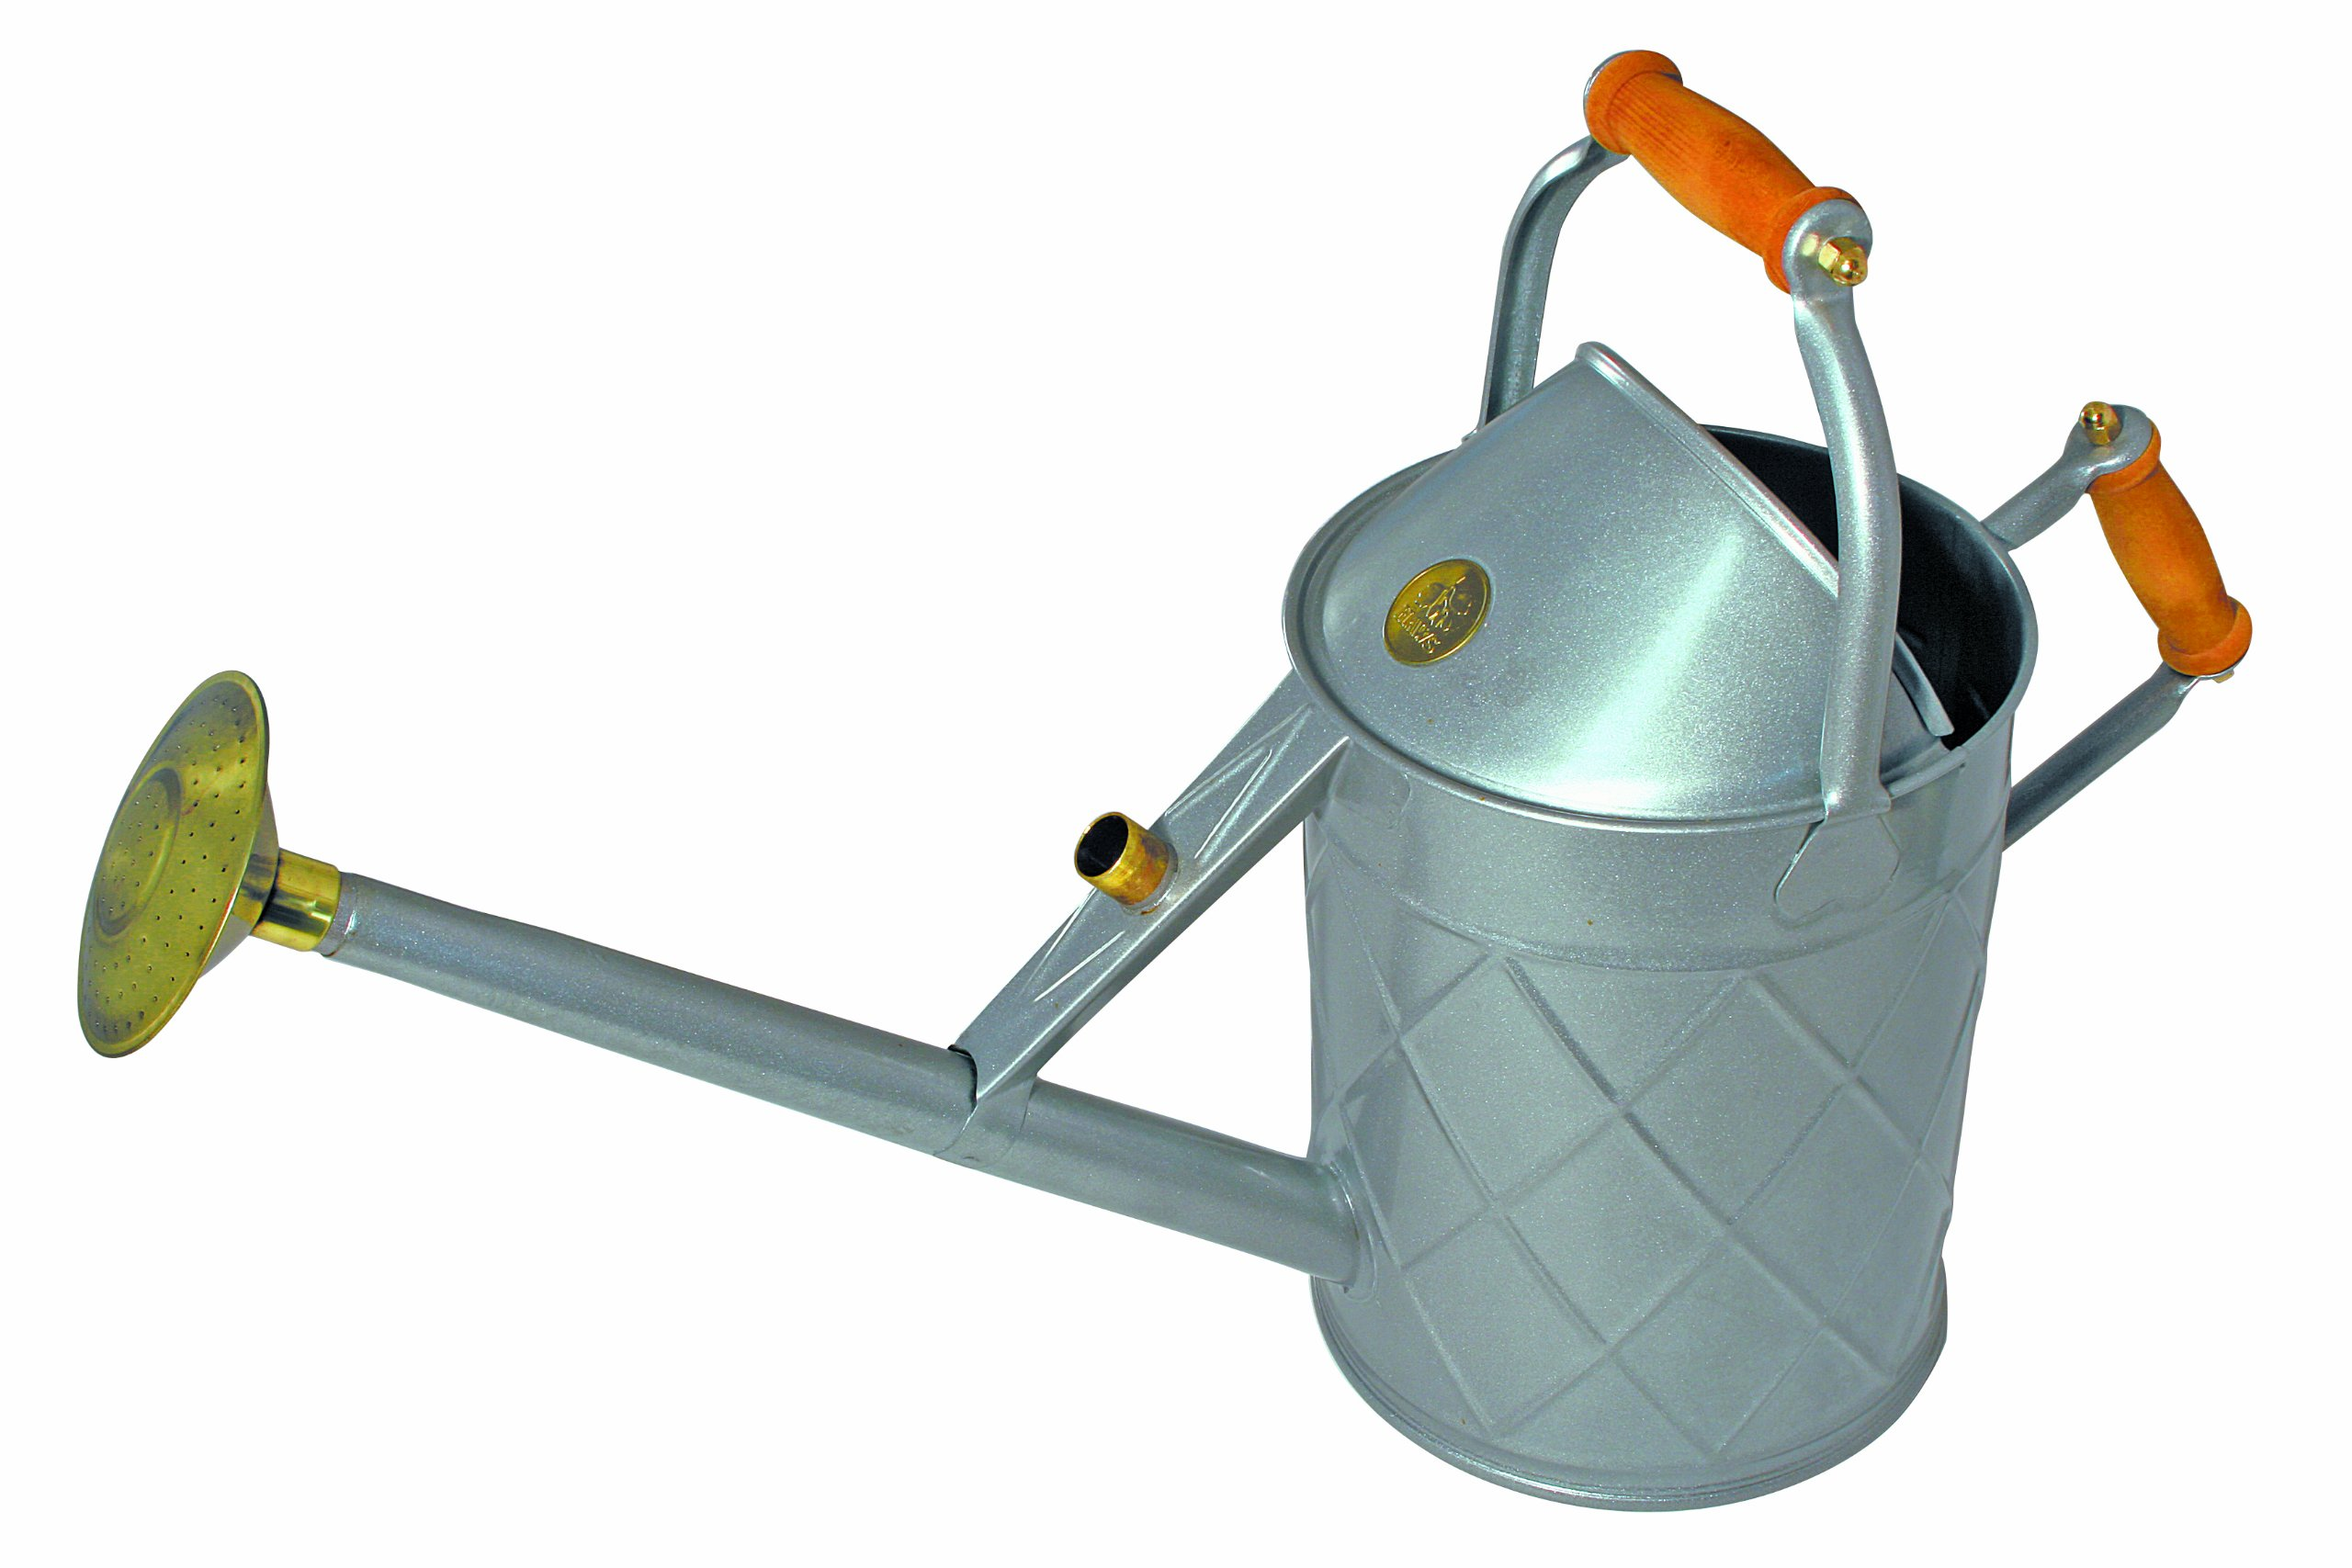 Haws V305T Heritage Galvanized Watering Can with Wood Handles, 2.3-Gallon/8.8-Liter, Titanium